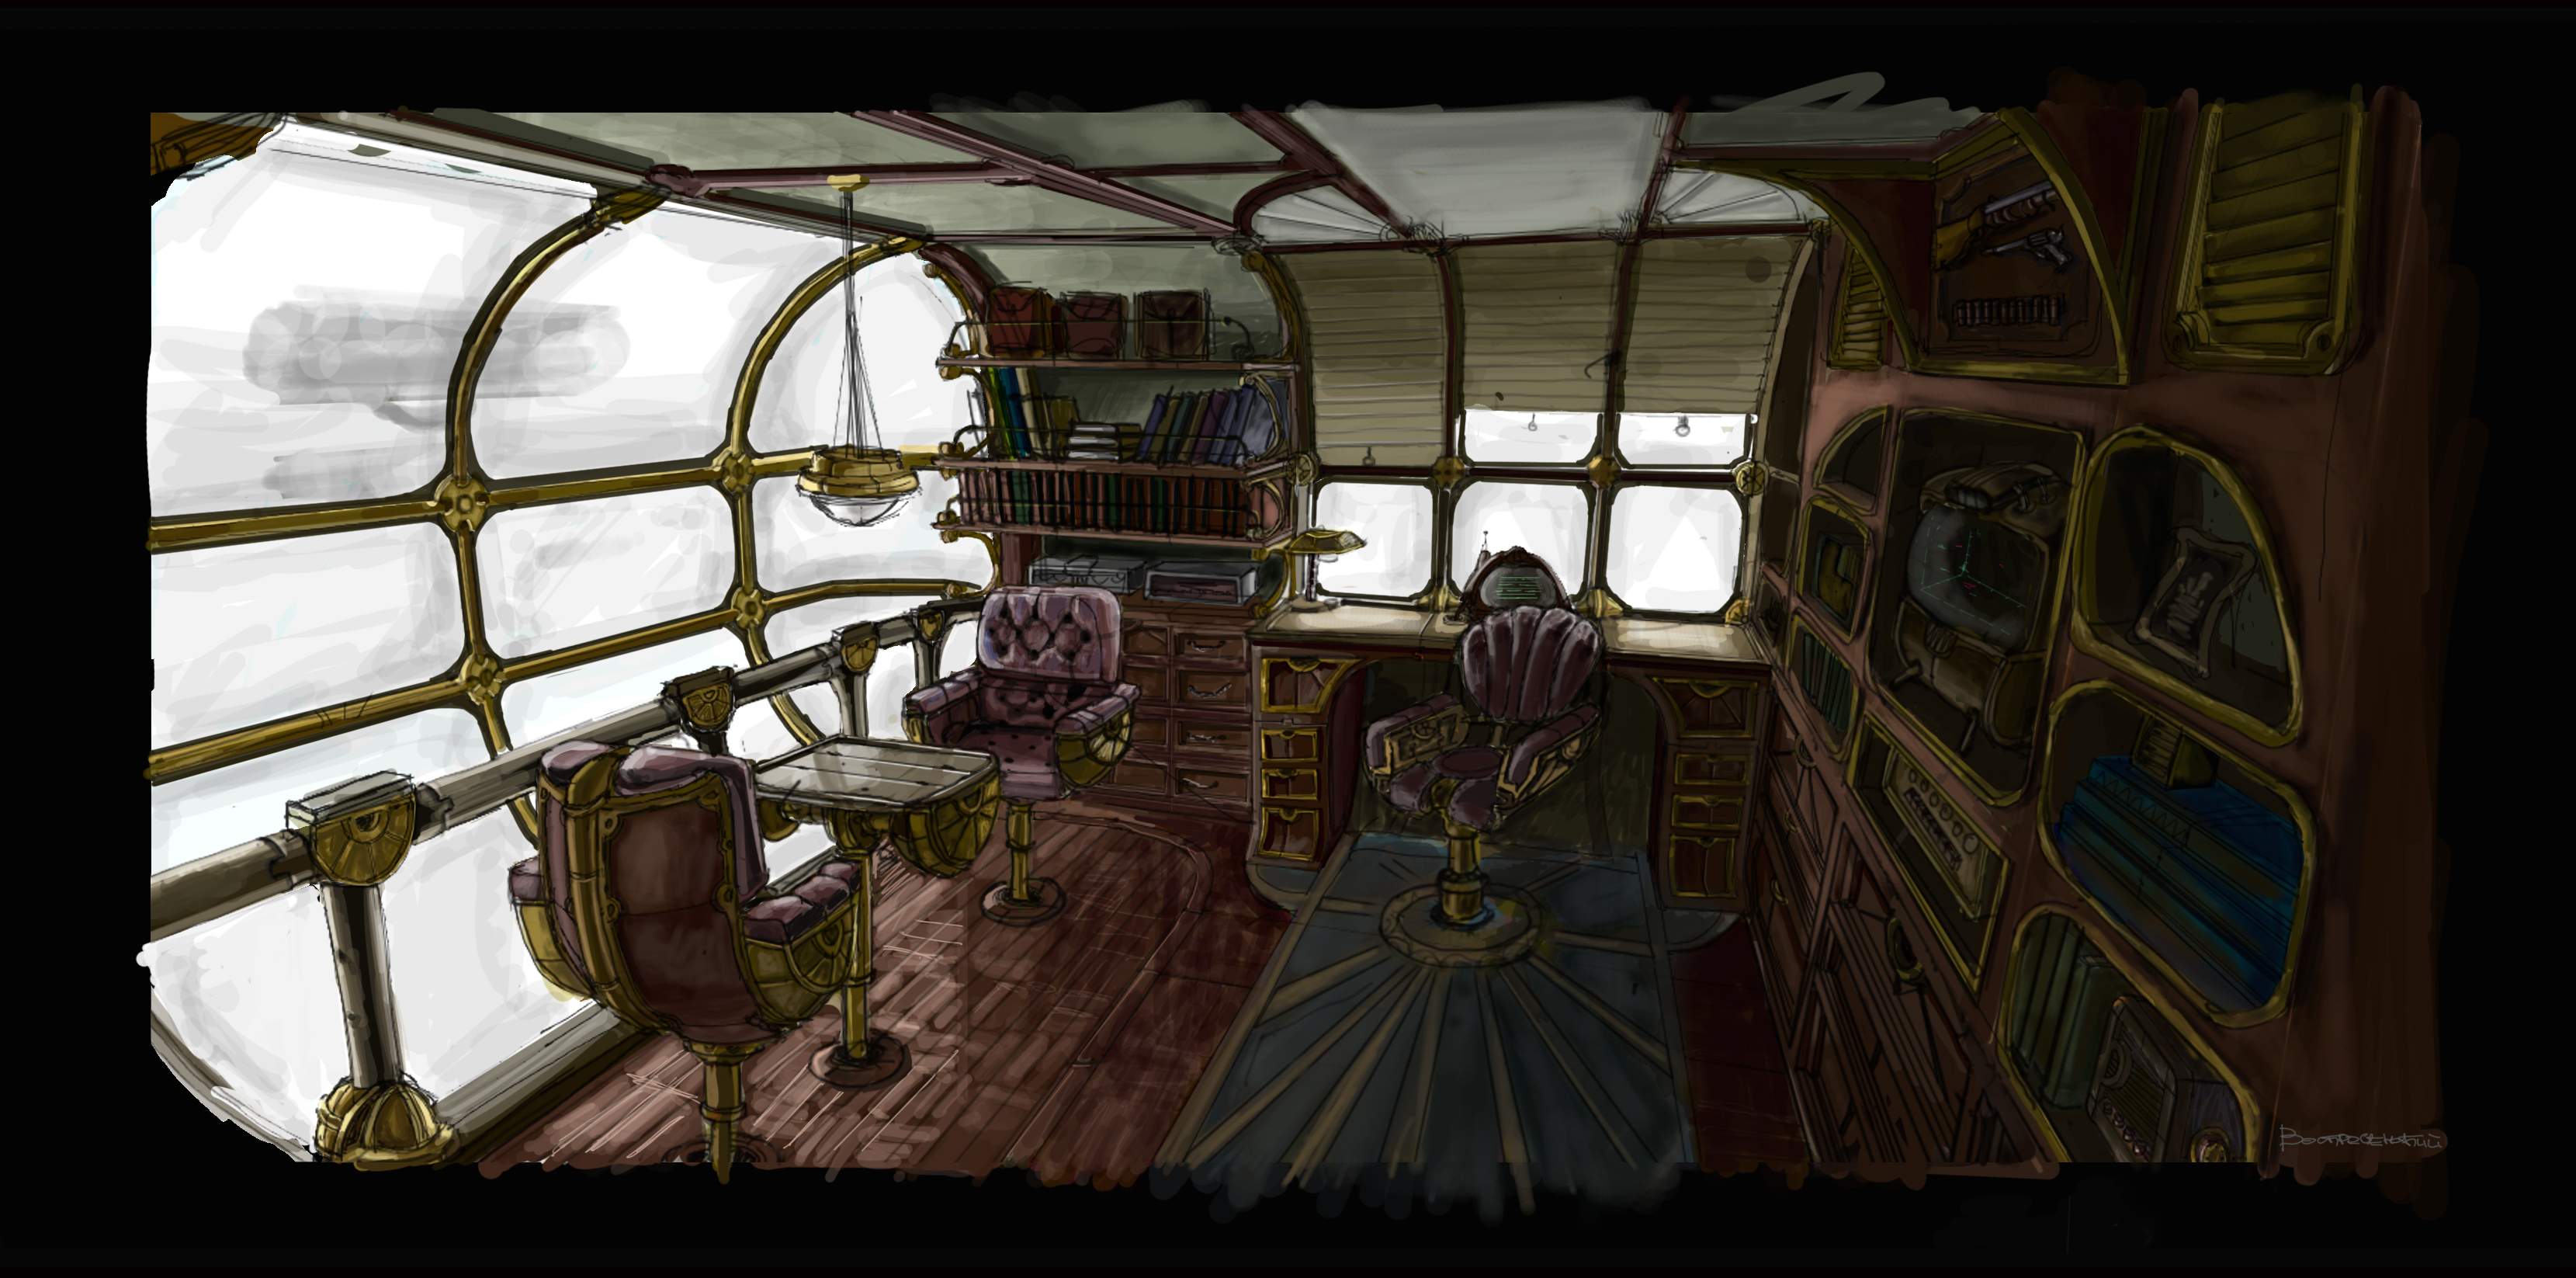 Steam Airship Interior By Voskresenski On Deviantart: steampunk interior